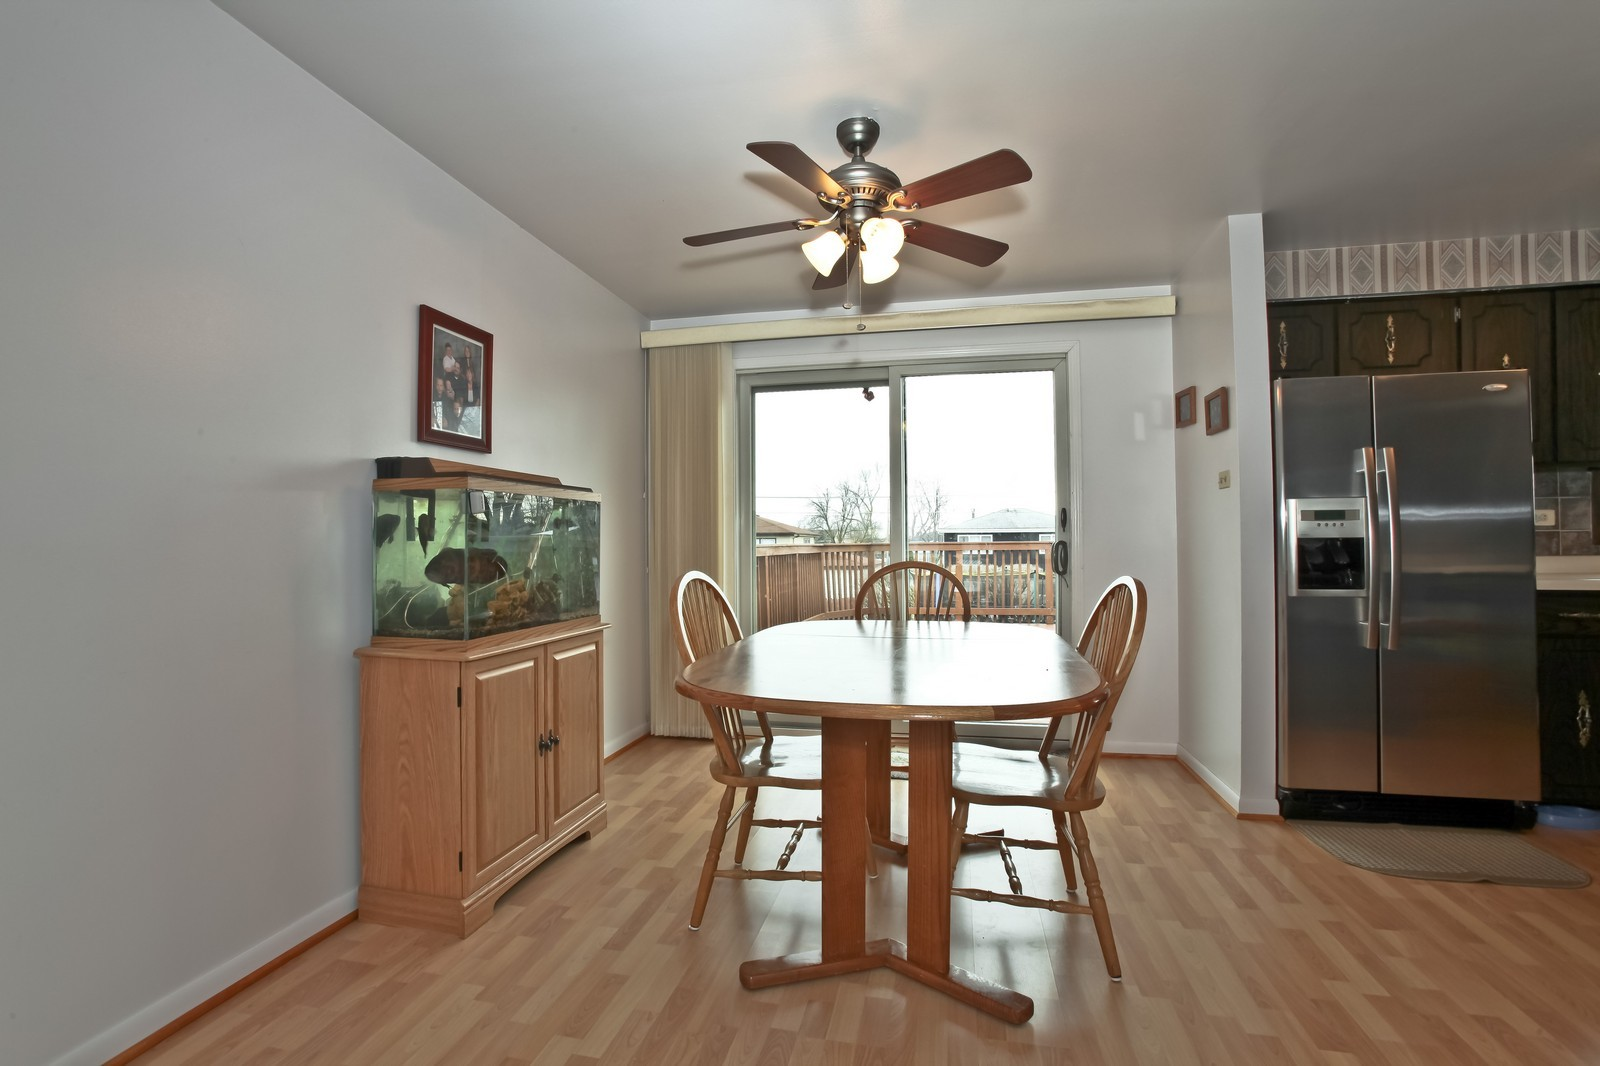 Real Estate Photography - 7609 W 173rd St, Tinley Park, IL, 60477 - Kitchen / Breakfast Room